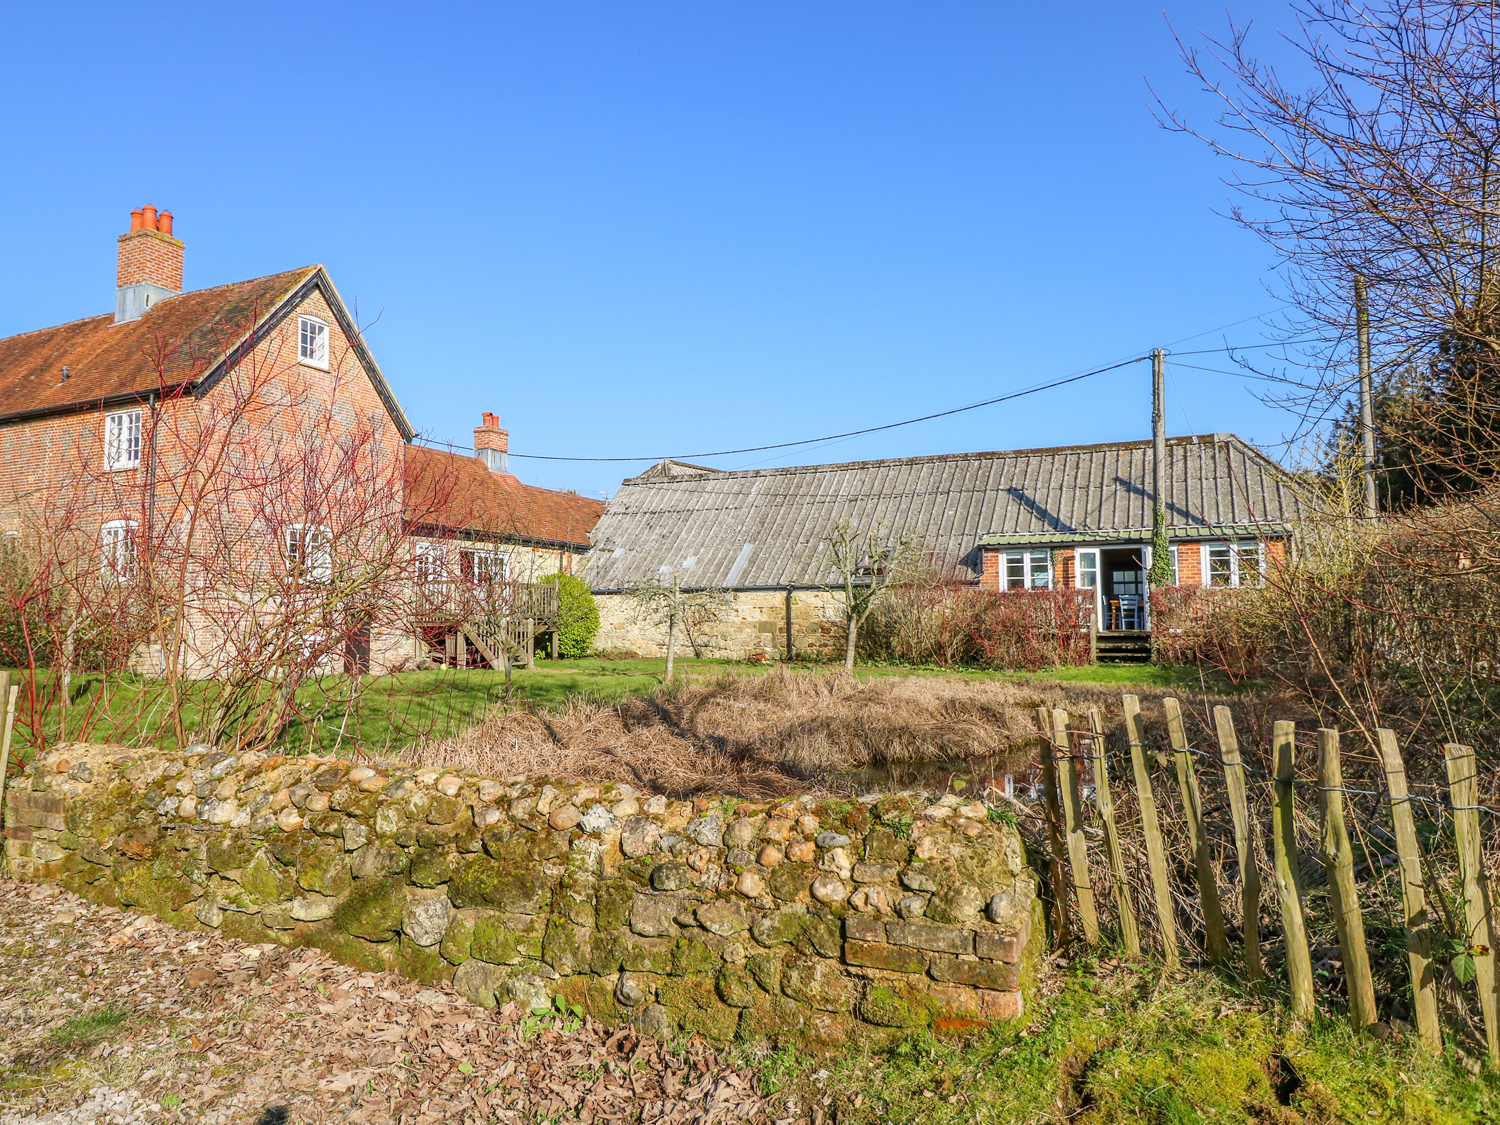 The Cowshed, Isle of Wight